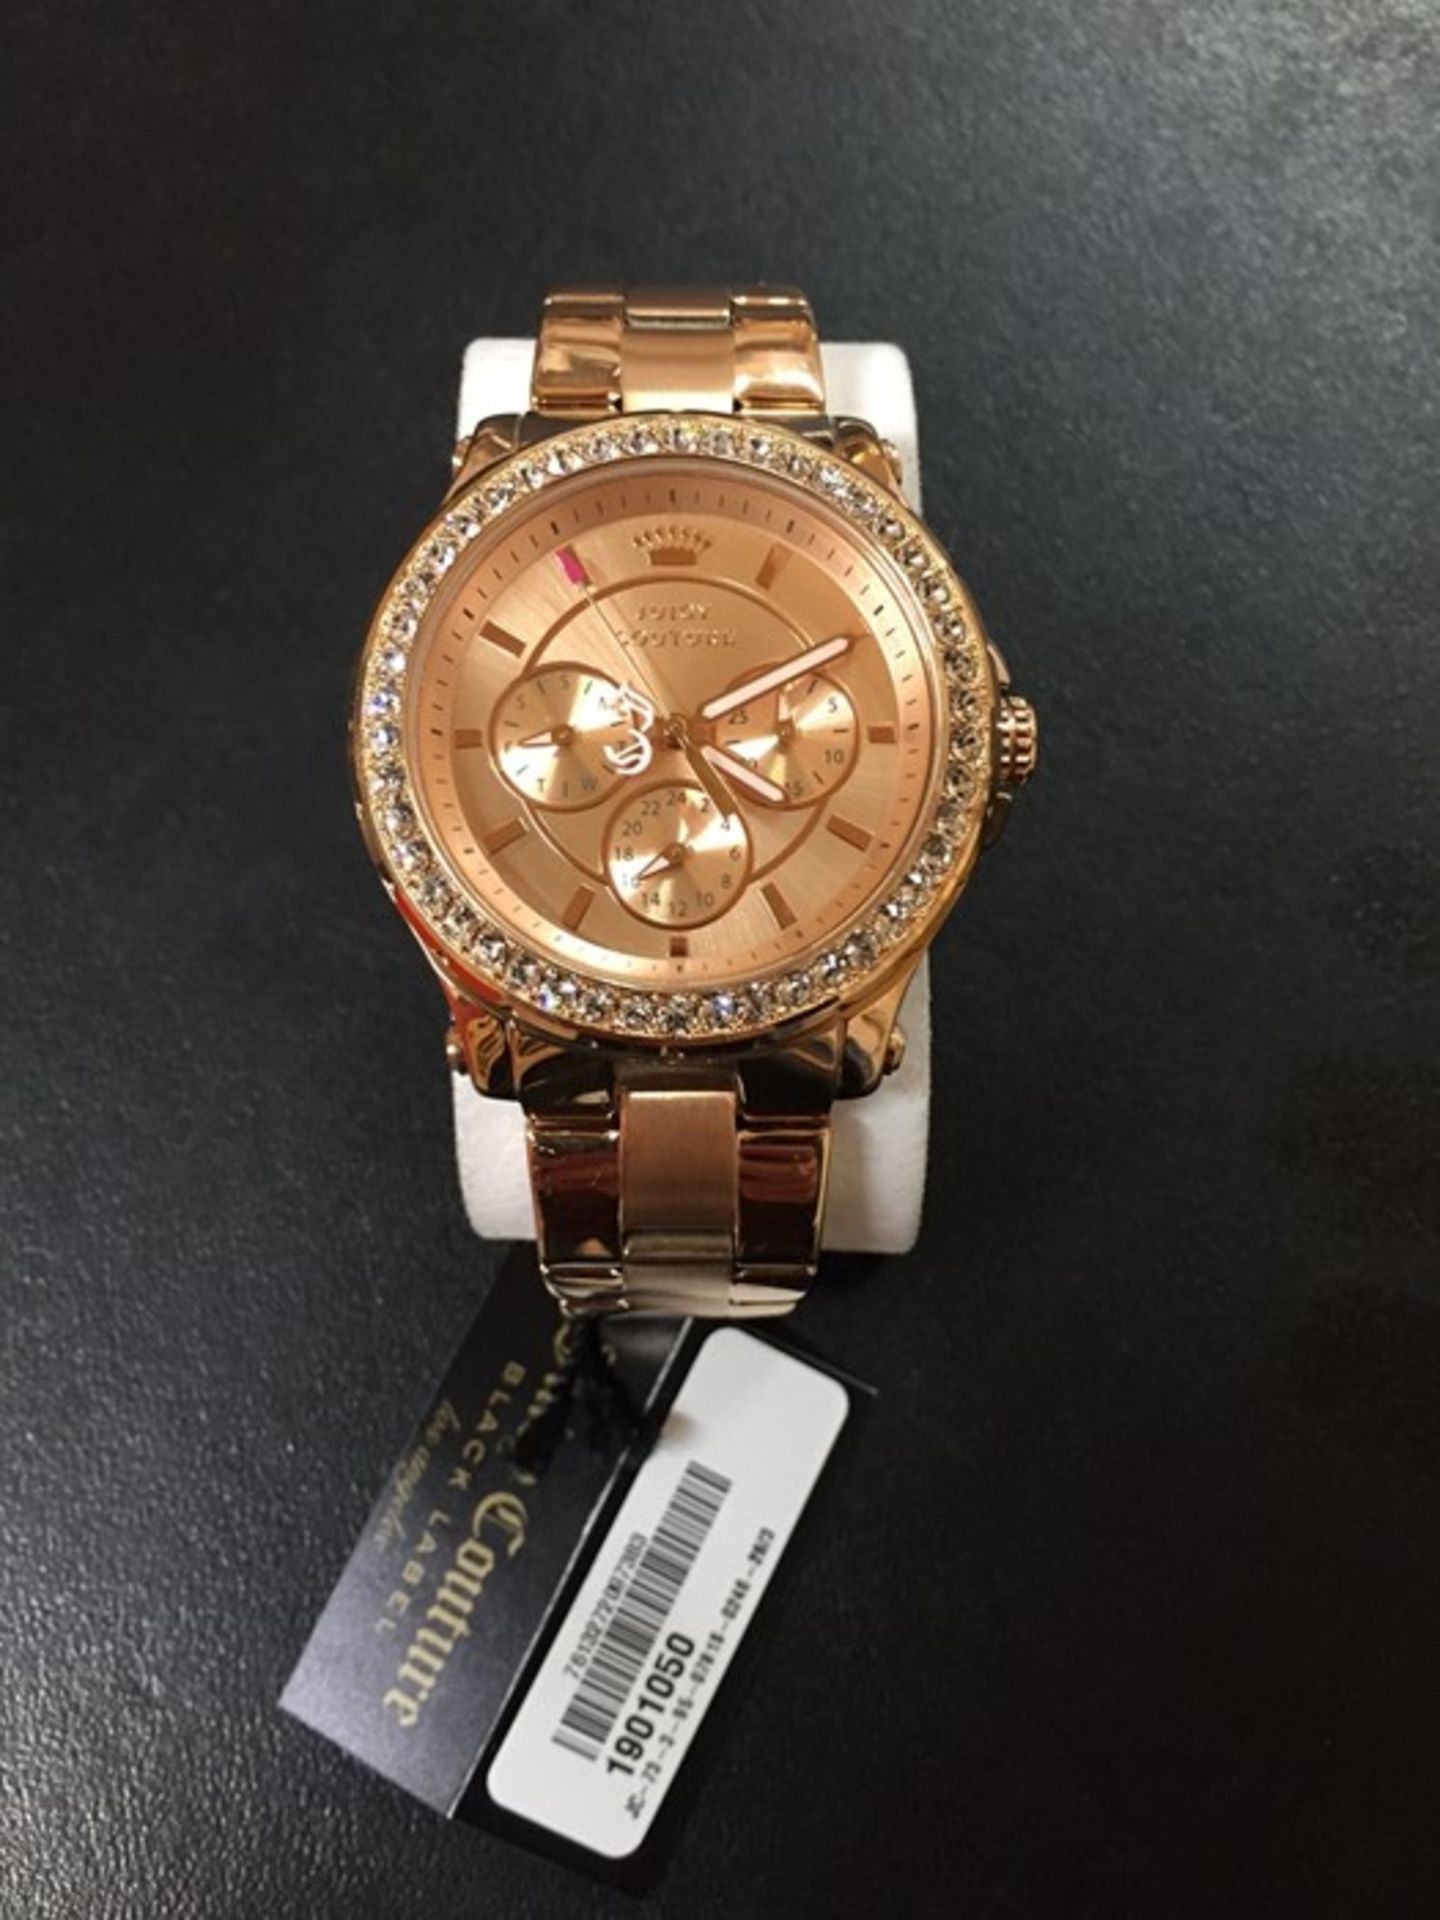 1 UNBOXED LADIES JUICY COUTURE PEDIGREE CHRONOGRAPH WATCH 1901050 IN ROSE GOLD / RRP £185.00 (